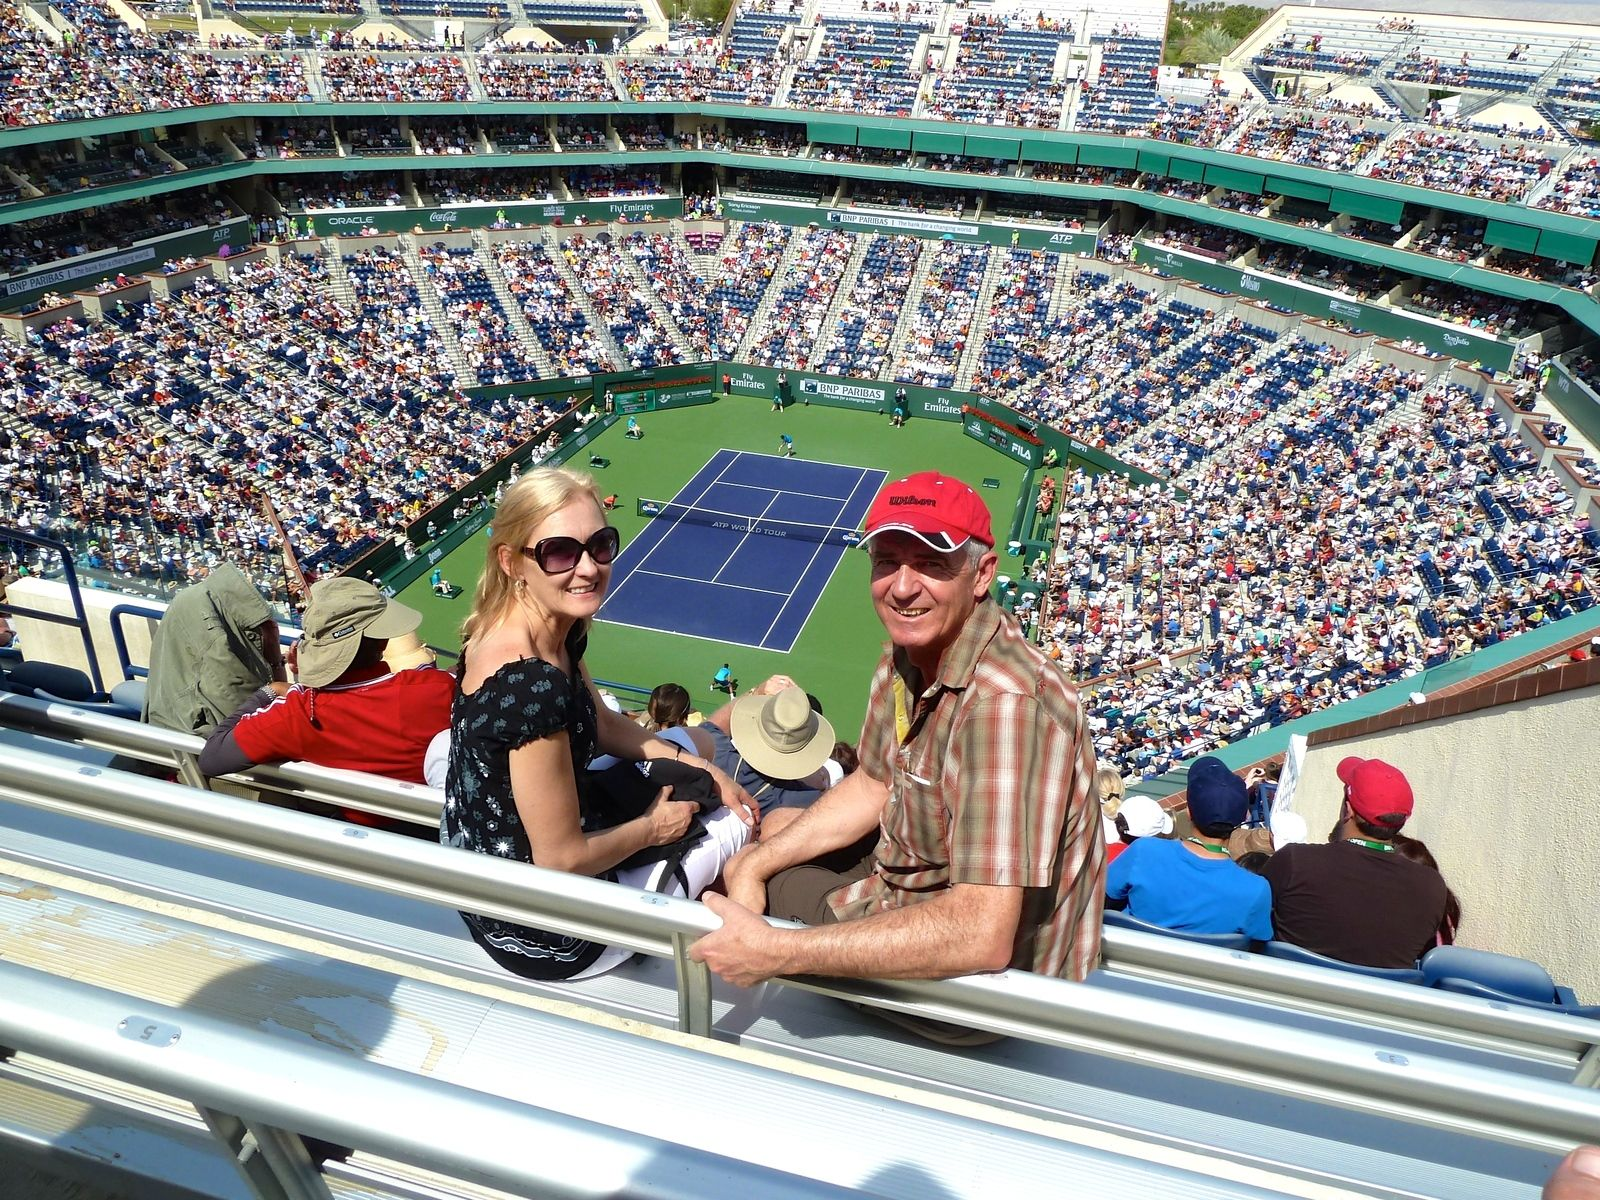 Elegant Tennis Tourist Indian Wells Fans Teri Church